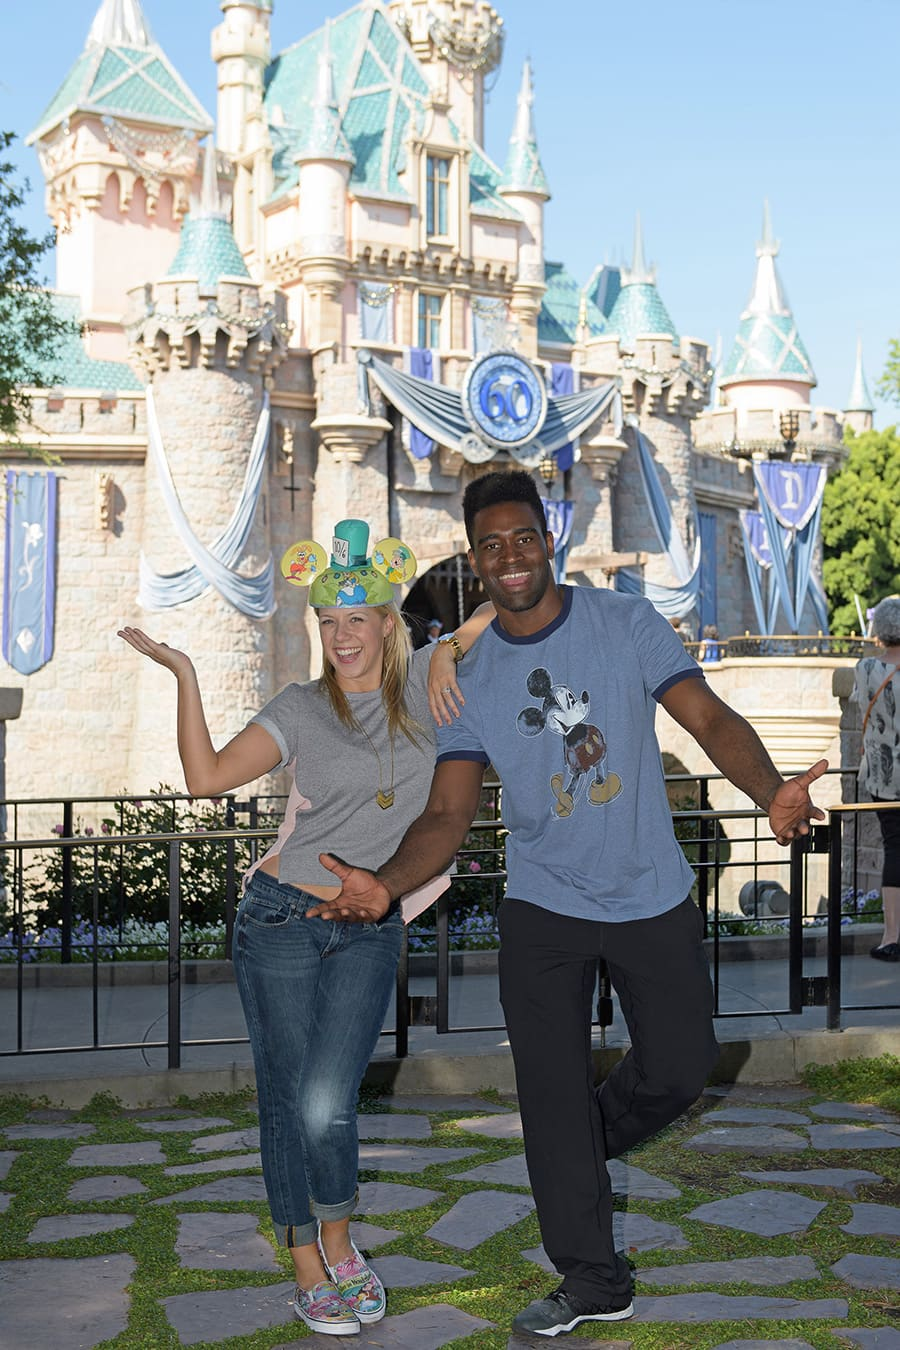 Dancing with the Stars Contestants Jodie Sweetin and Keo Motsepe at Disneyland Resort